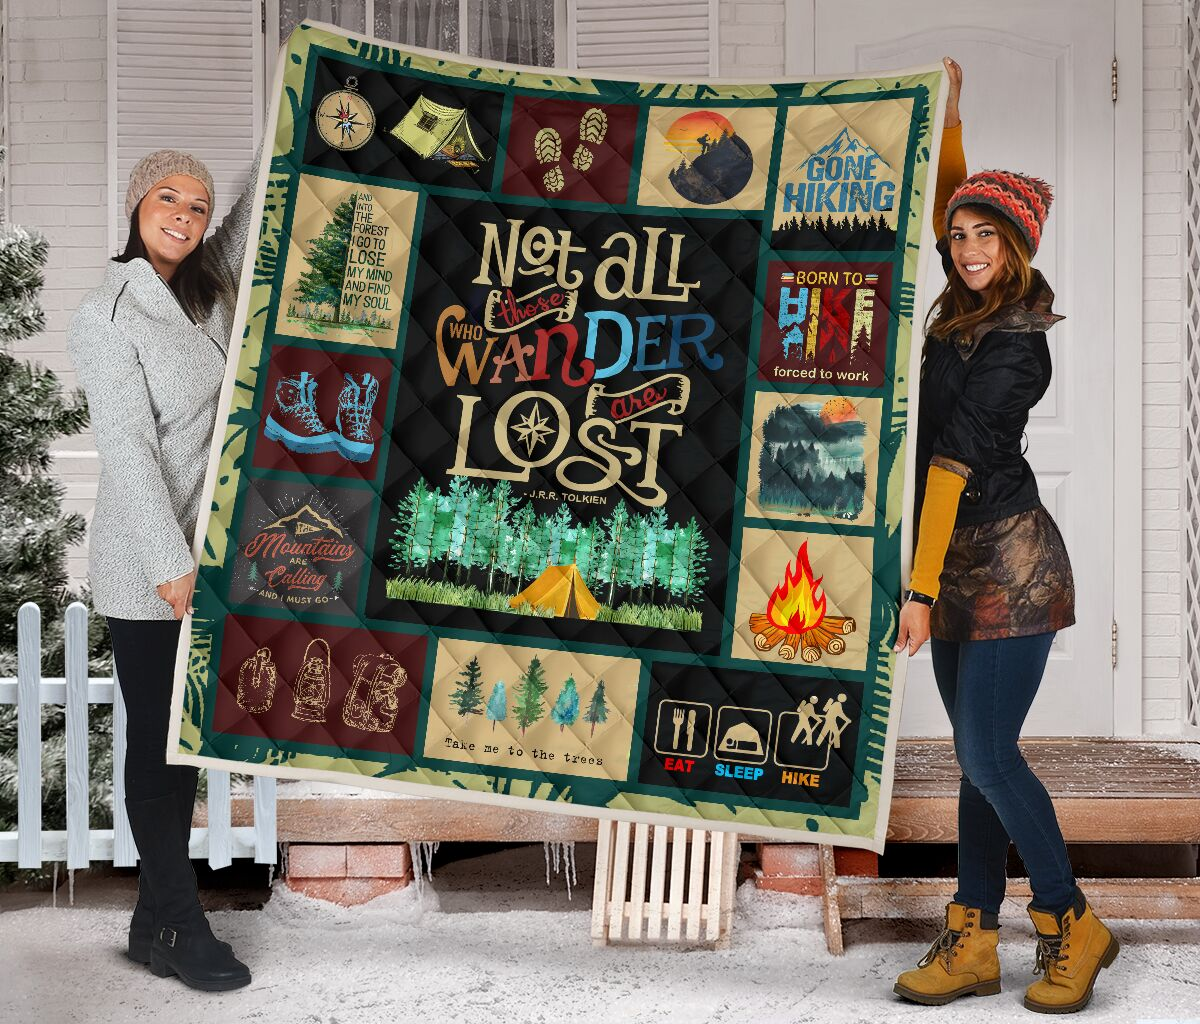 Hiking not all those who wander are lost quilt 4